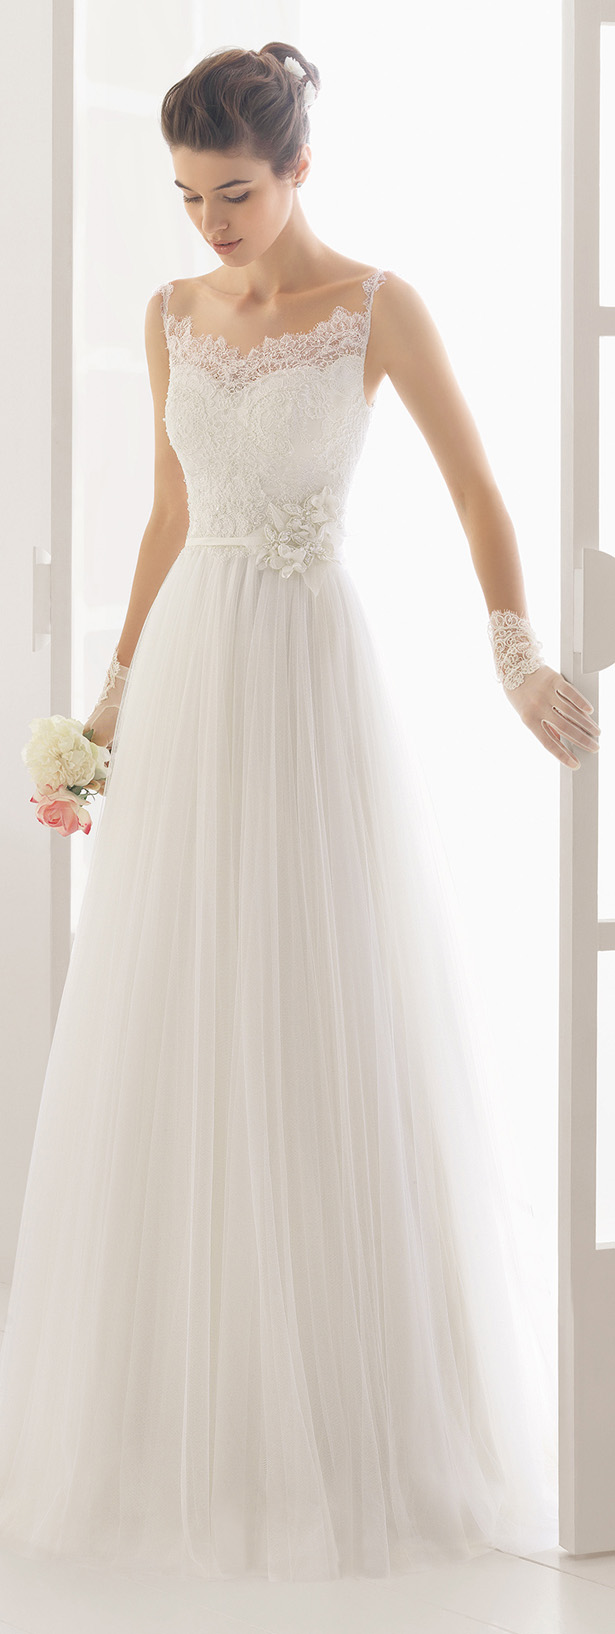 aire barcelona bridal collection part 1 wedding gowns Aire Barcelona Wedding Dress